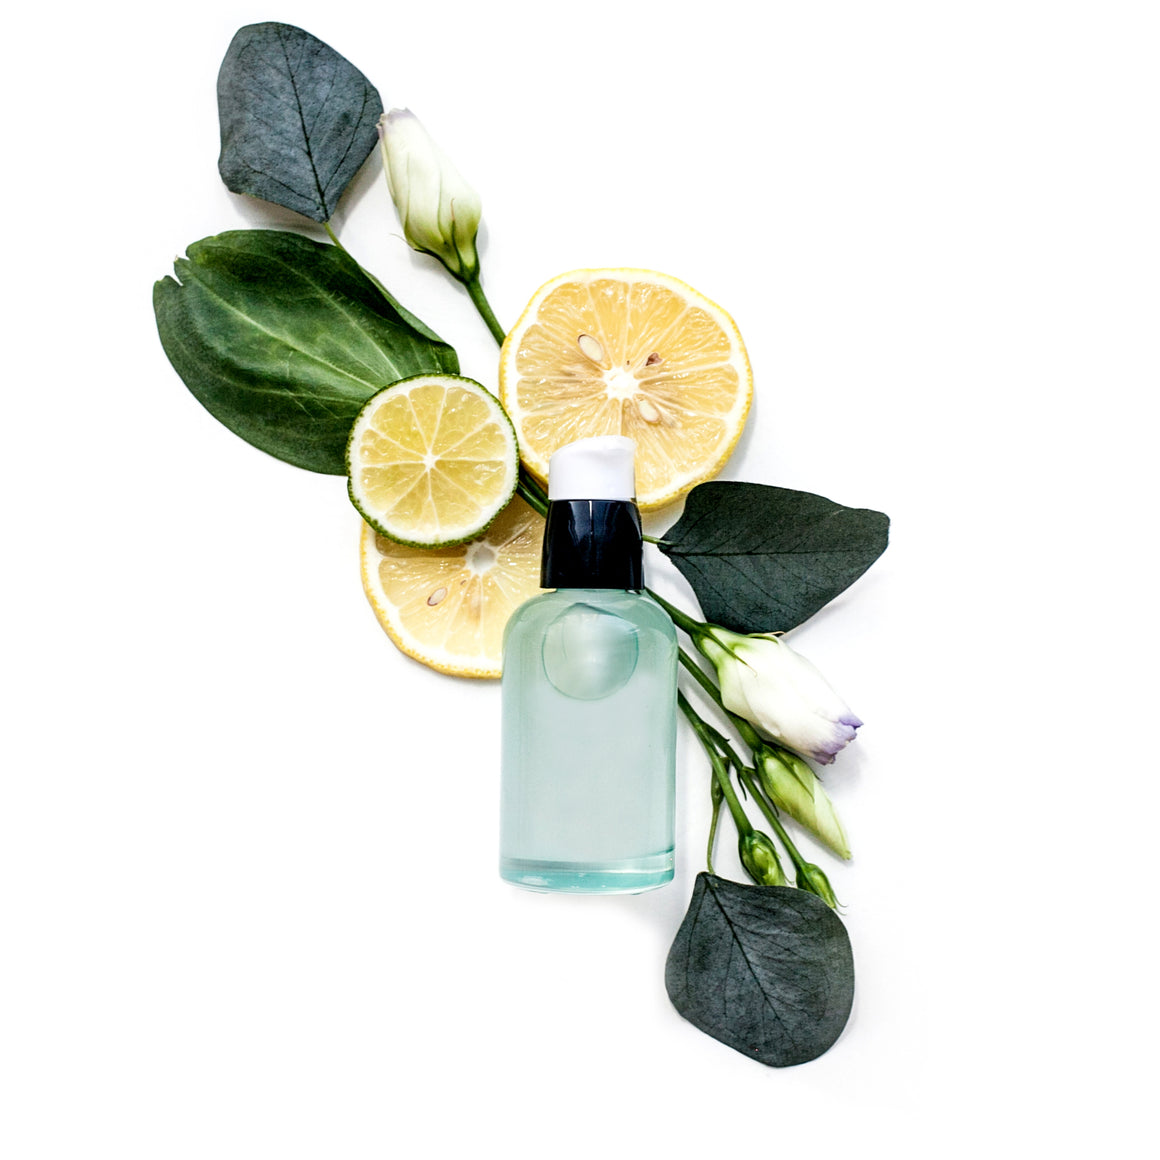 Skin Rescue Deep Cleansing Lemon & Lime Face Wash